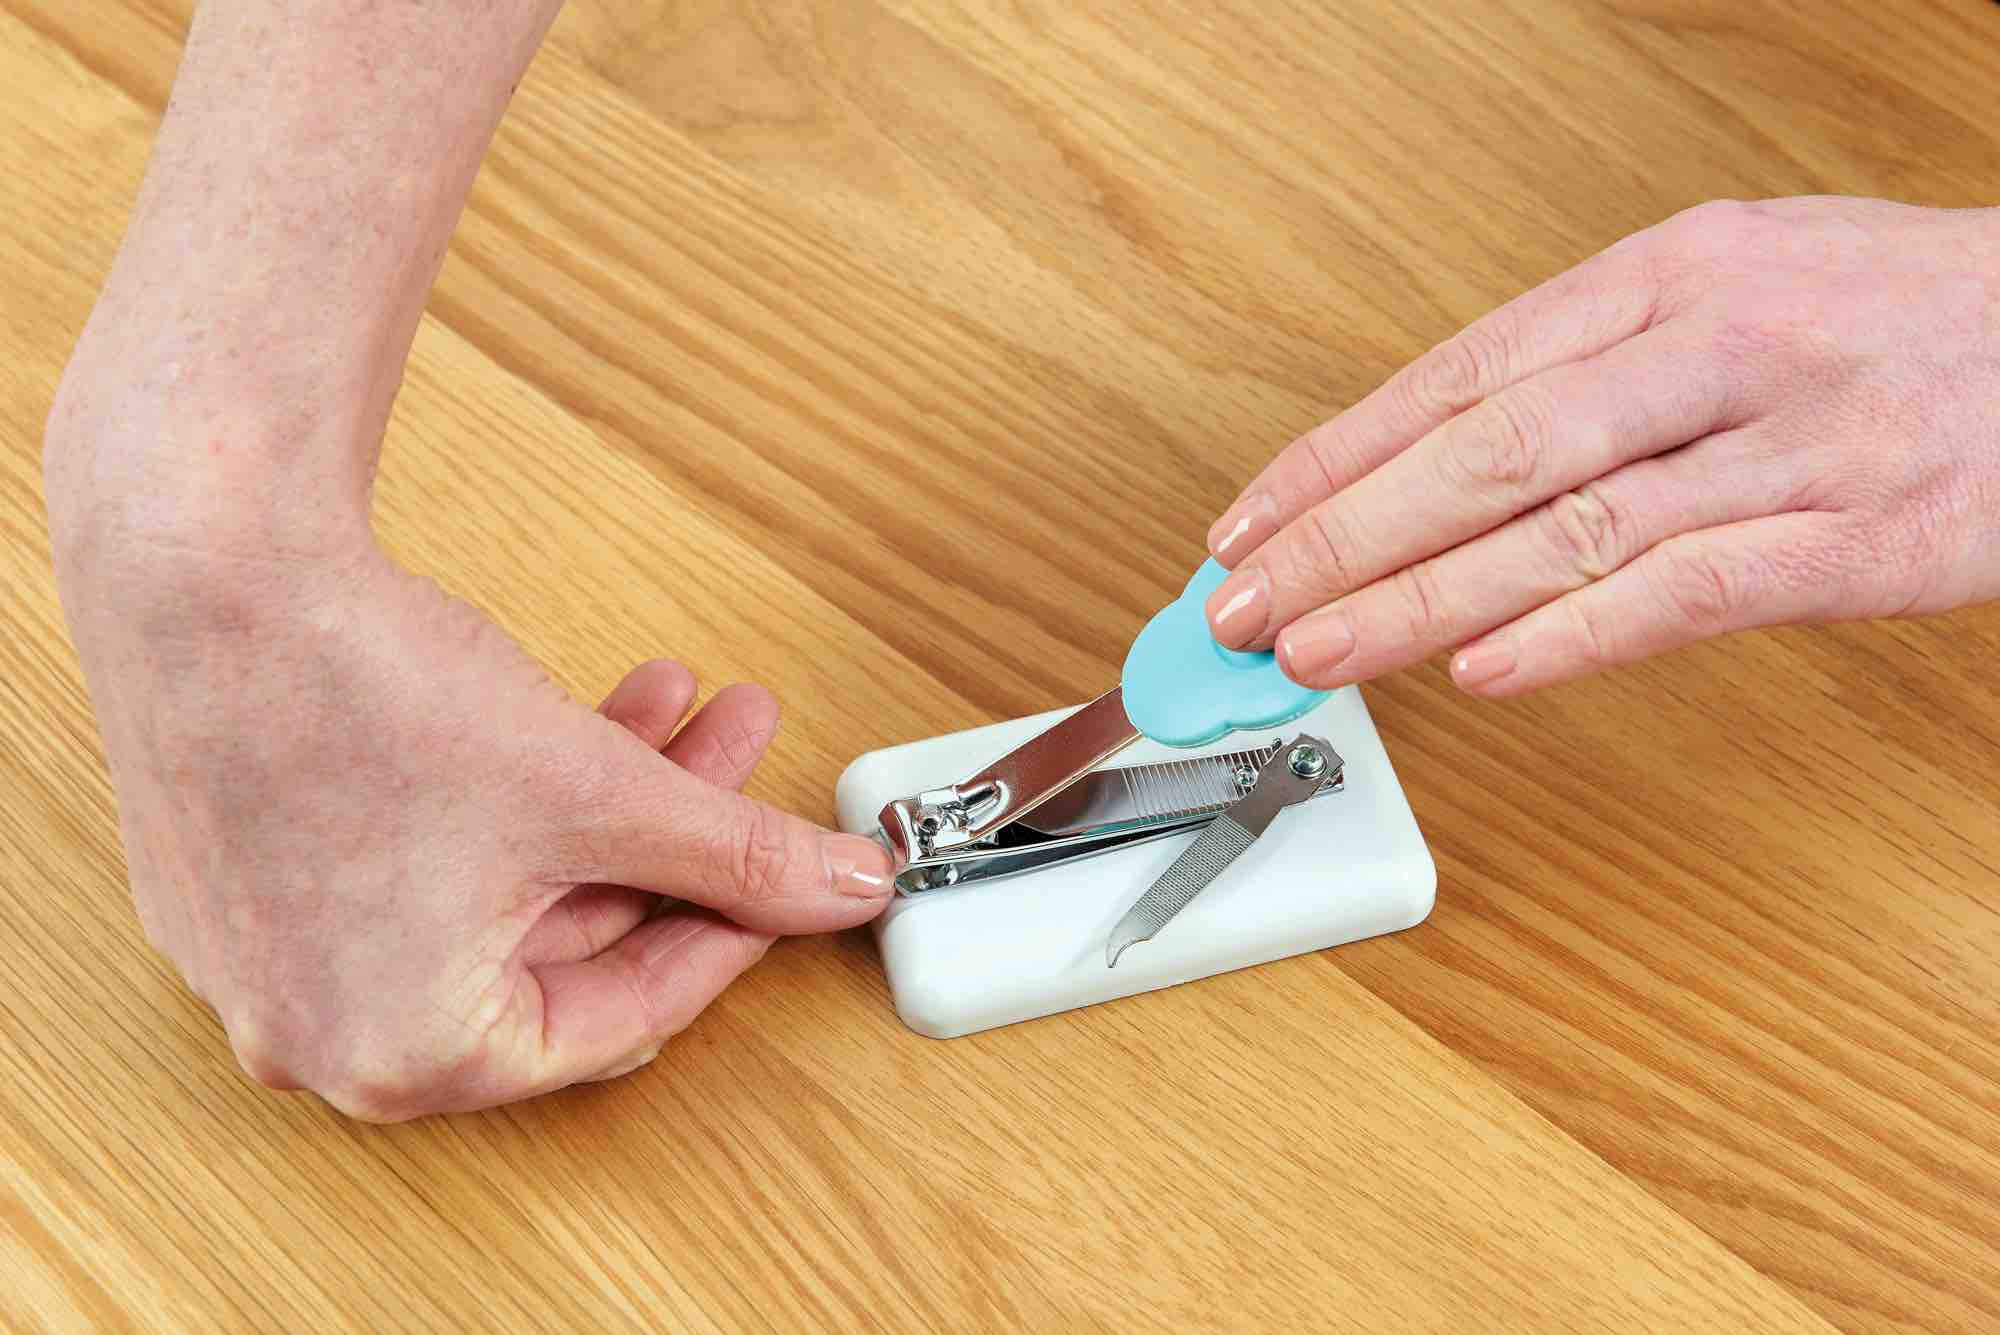 how to cut nails without nail clippers